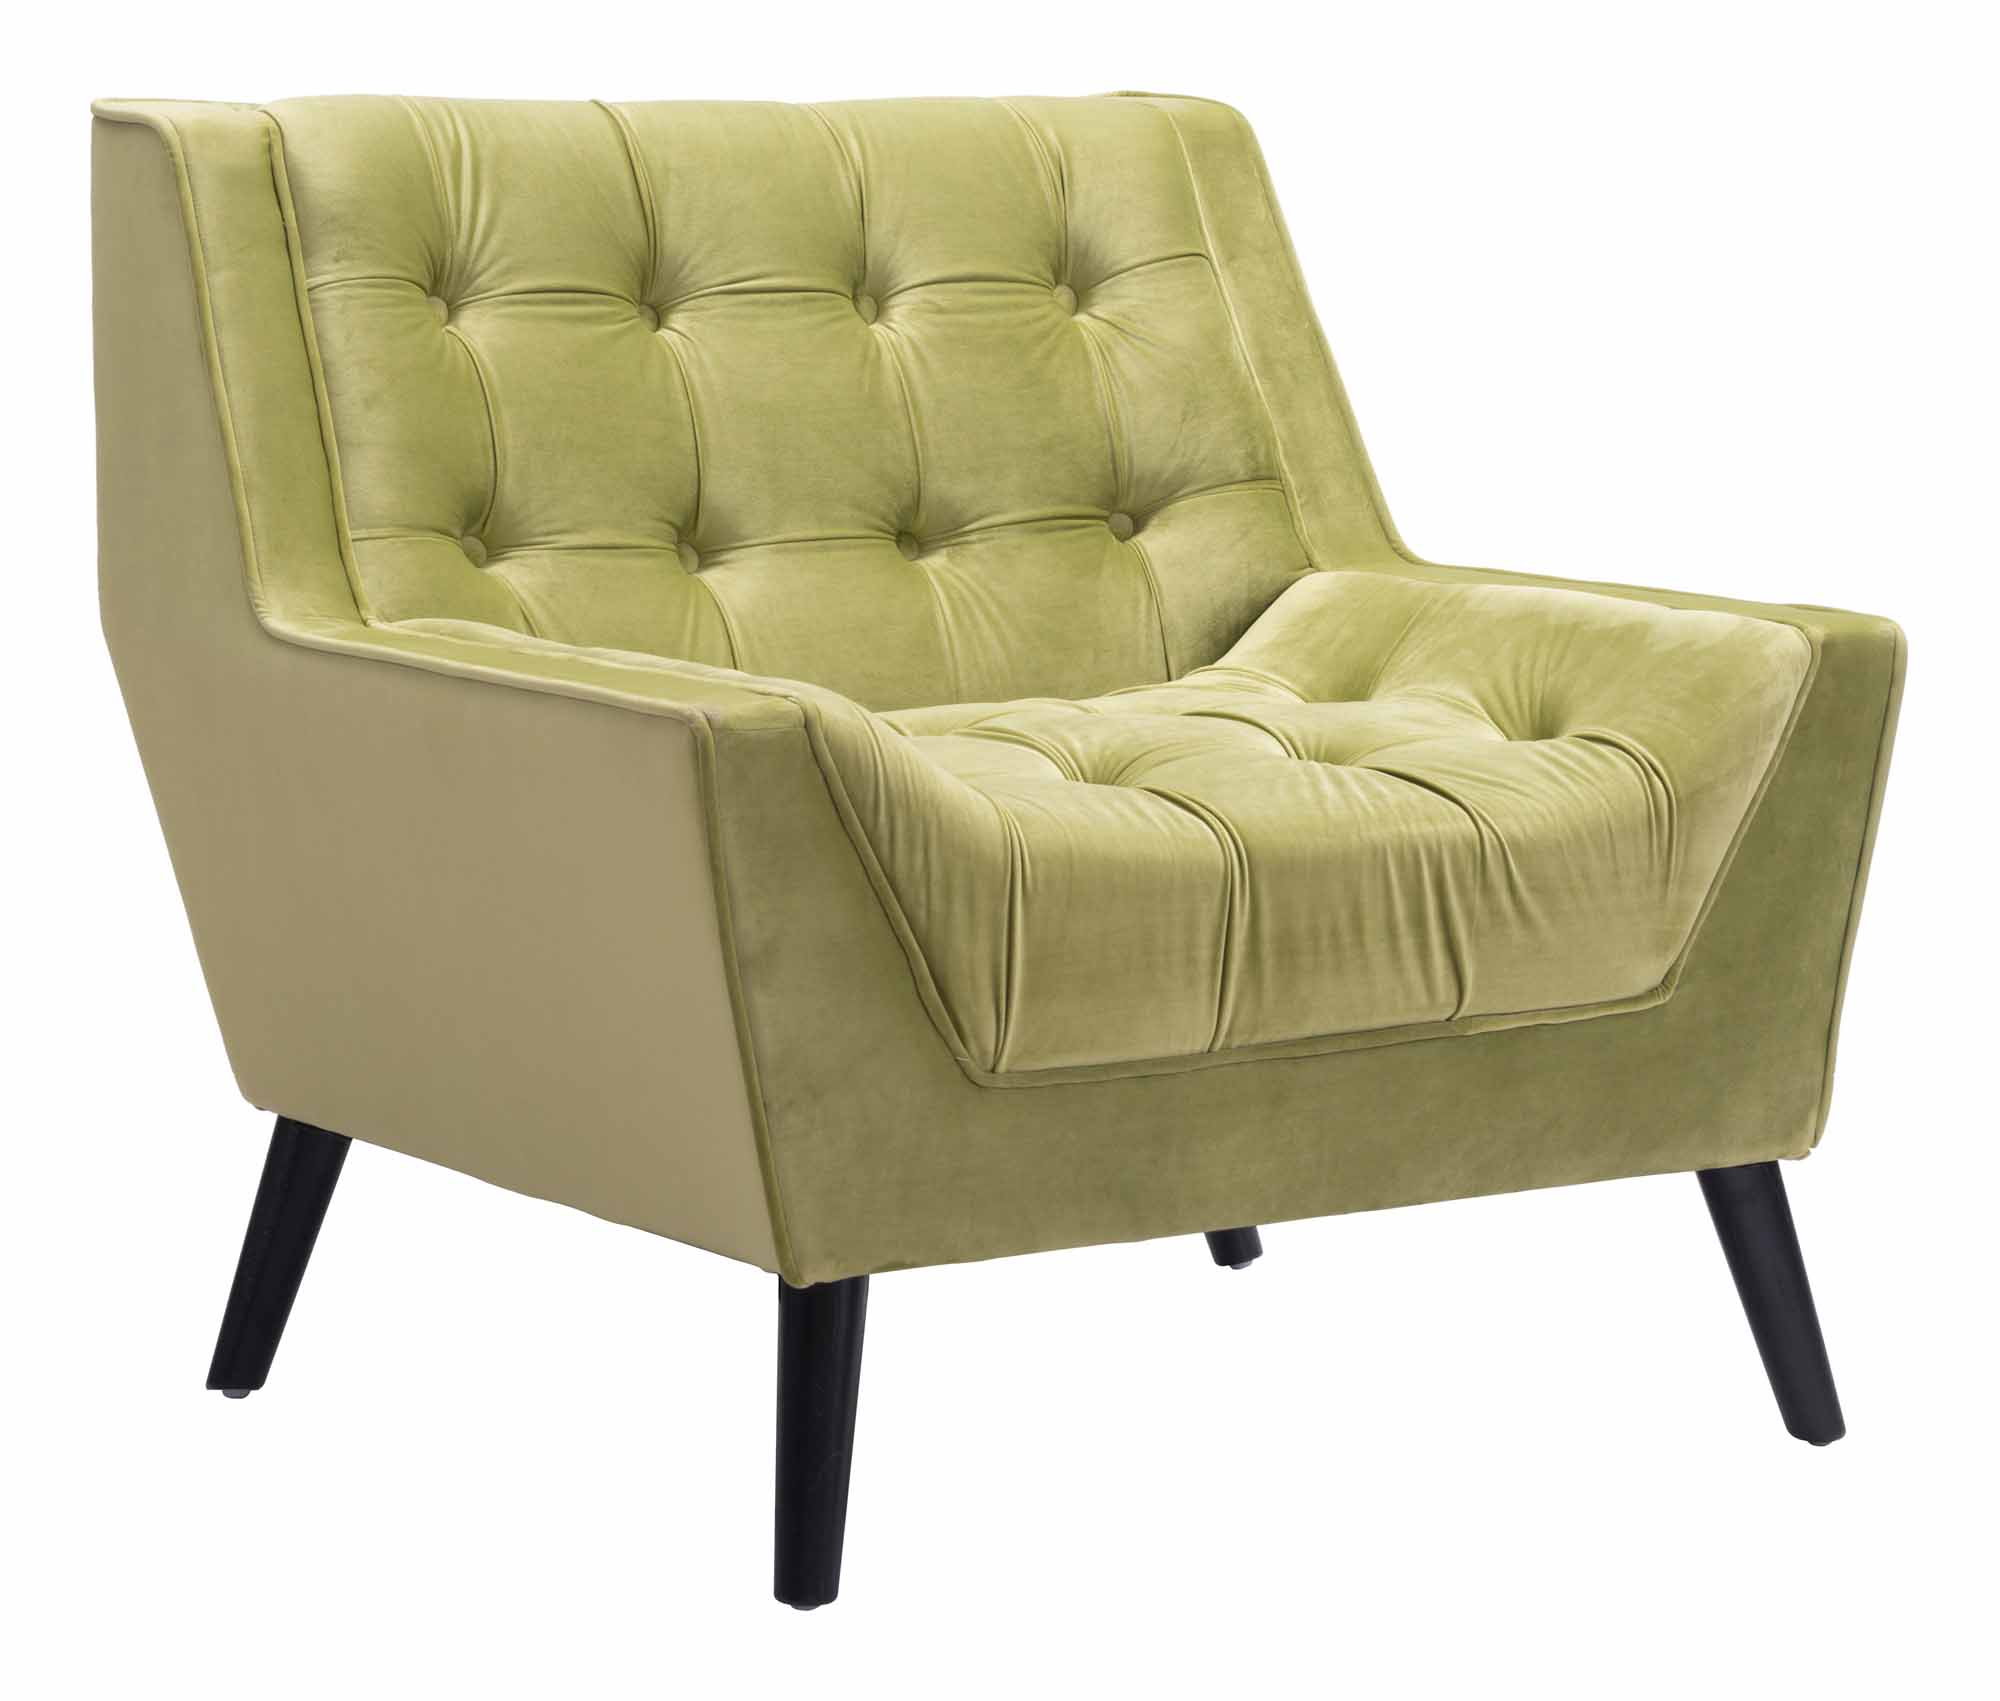 green velvet tufted chair mesh outdoor chairs nantucket arm by zuo modern